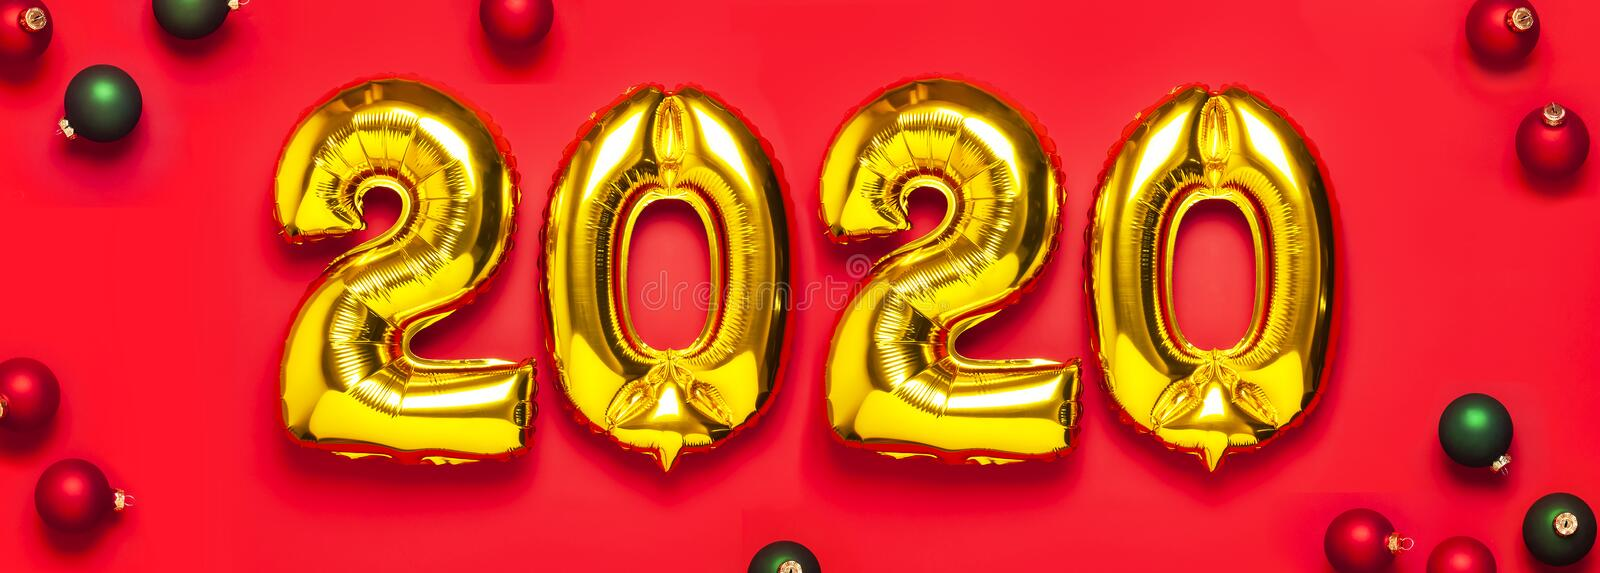 2020 inflatable golden numbers with red and green christmas balls on red background. New year winter decoration, holiday symbol, stock photography